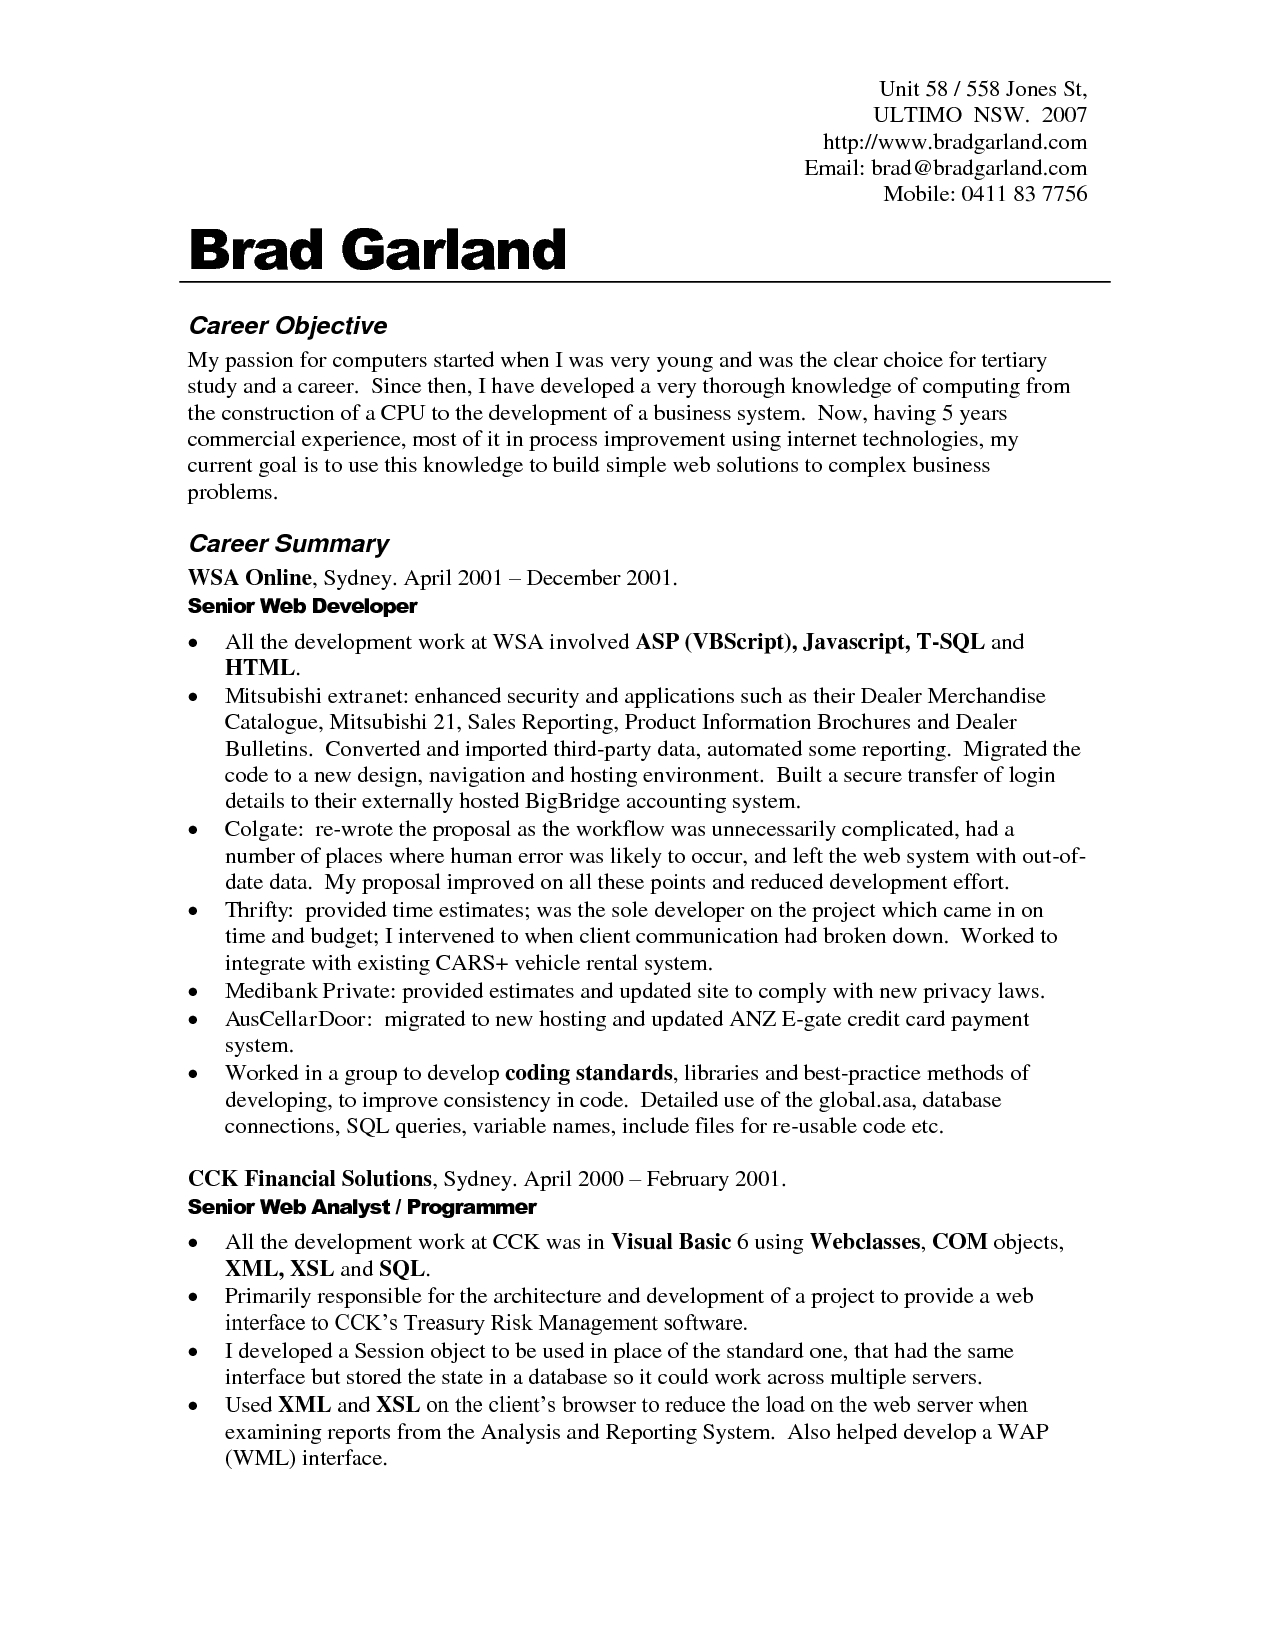 How To Write A Great Resume Objective Resume LiveCareer Shopgrat How To  Write A Great Resume